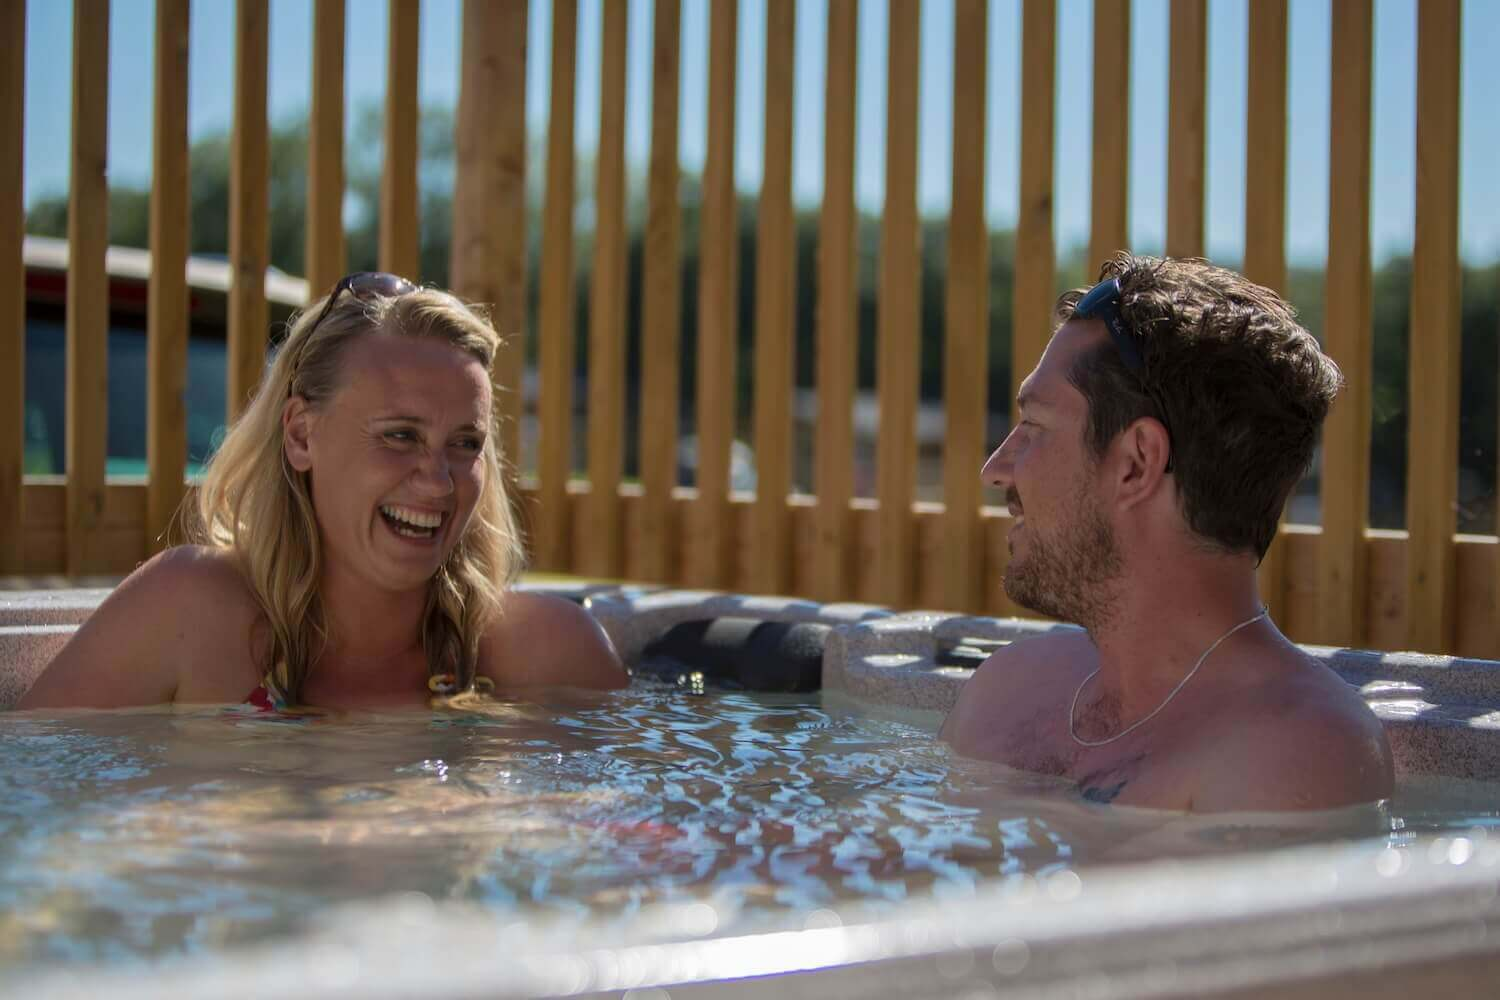 Couple in hot tub